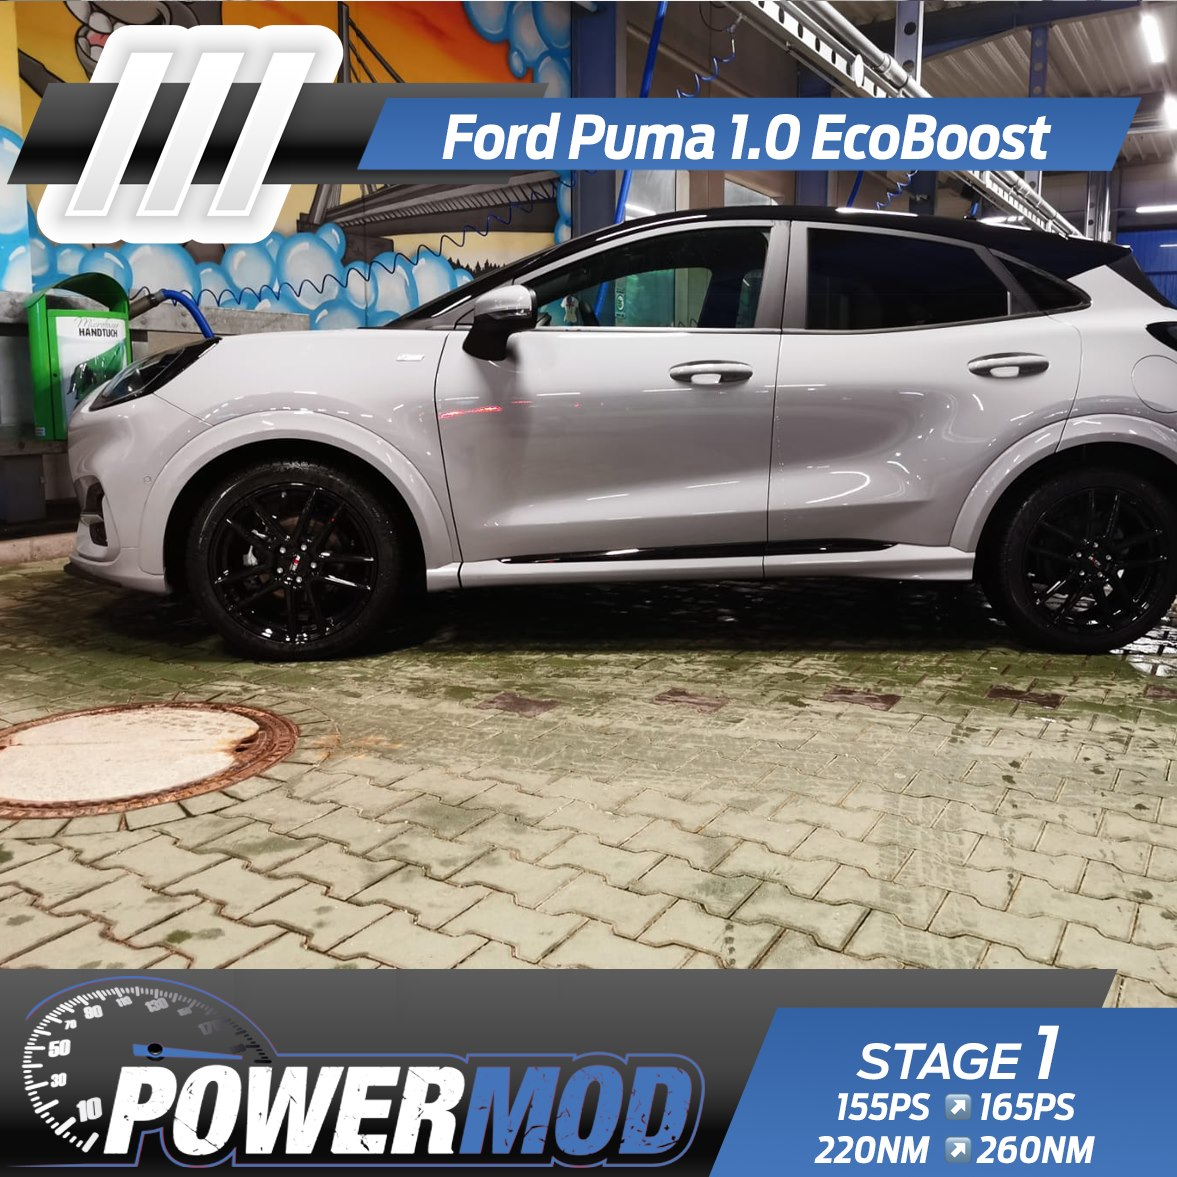 Ford Puma 1.0 EcoBoost Chiptuning